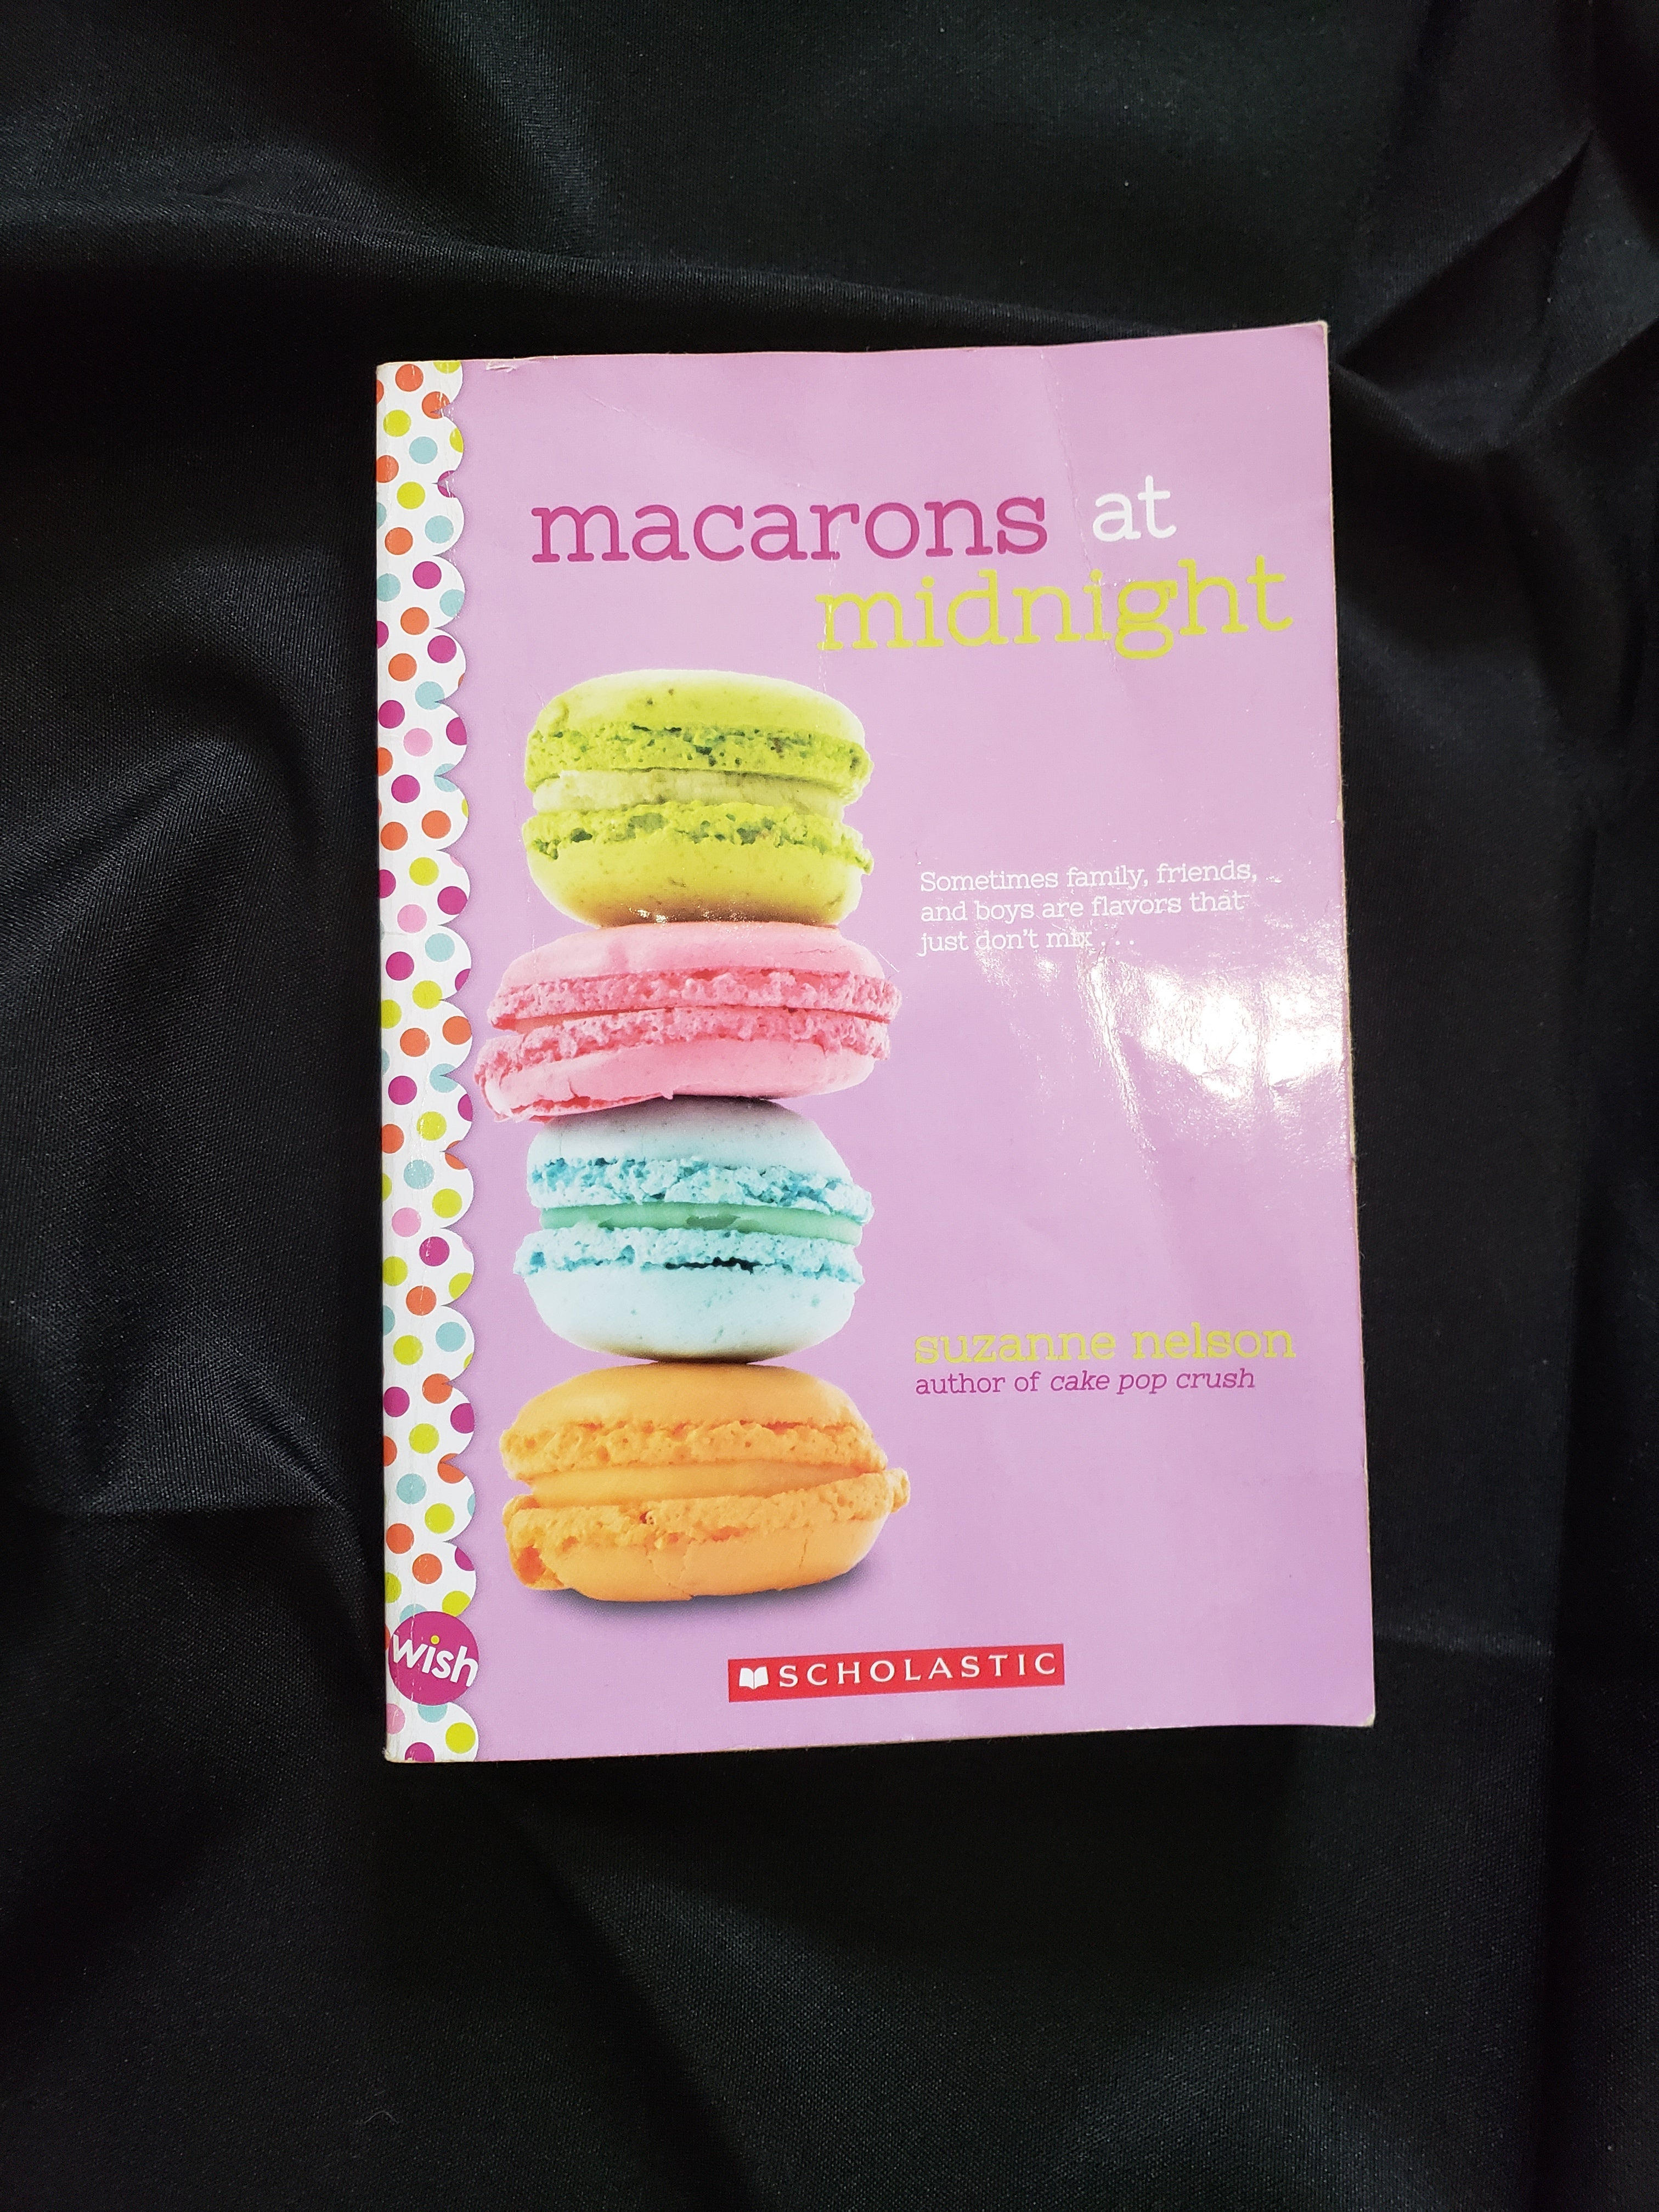 Macarons at midnight